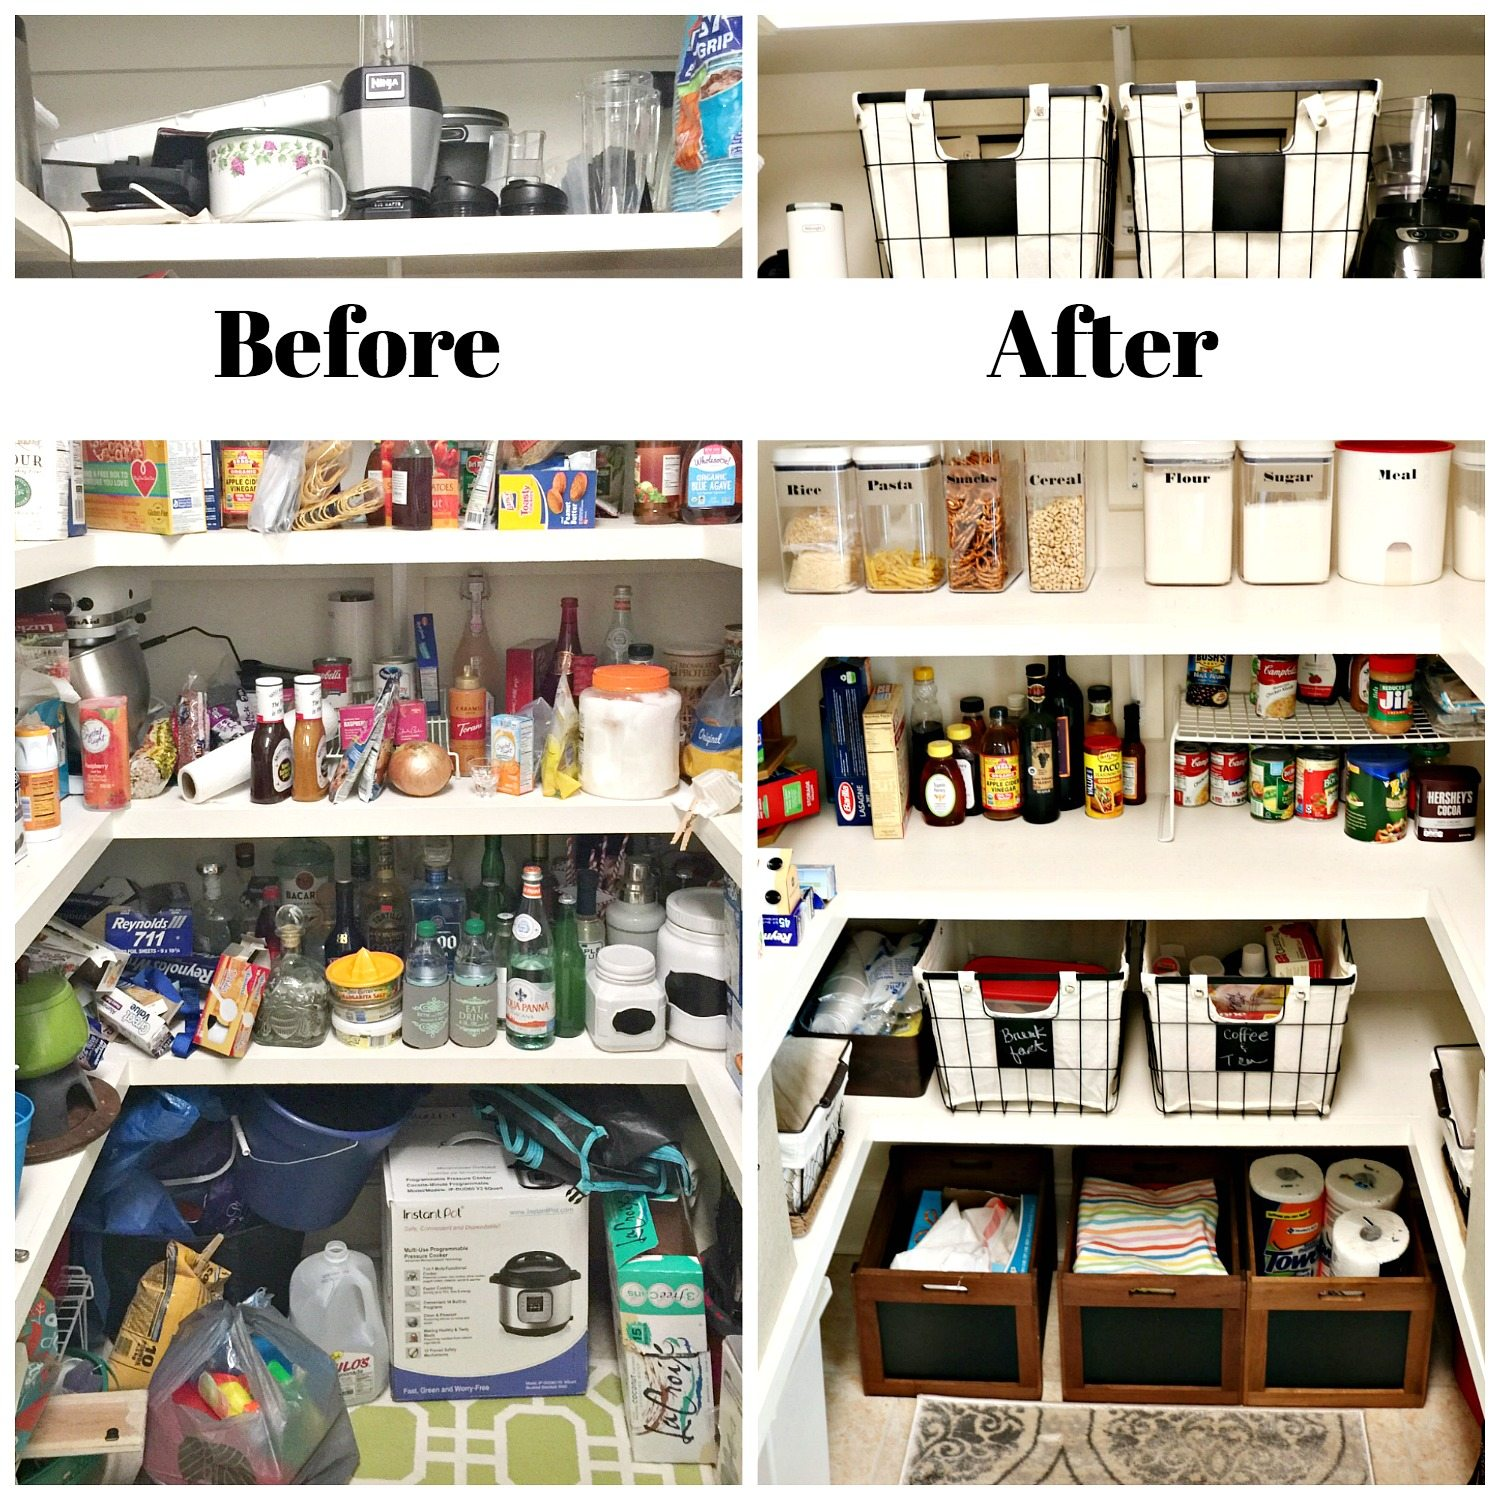 Pantry organized after and before